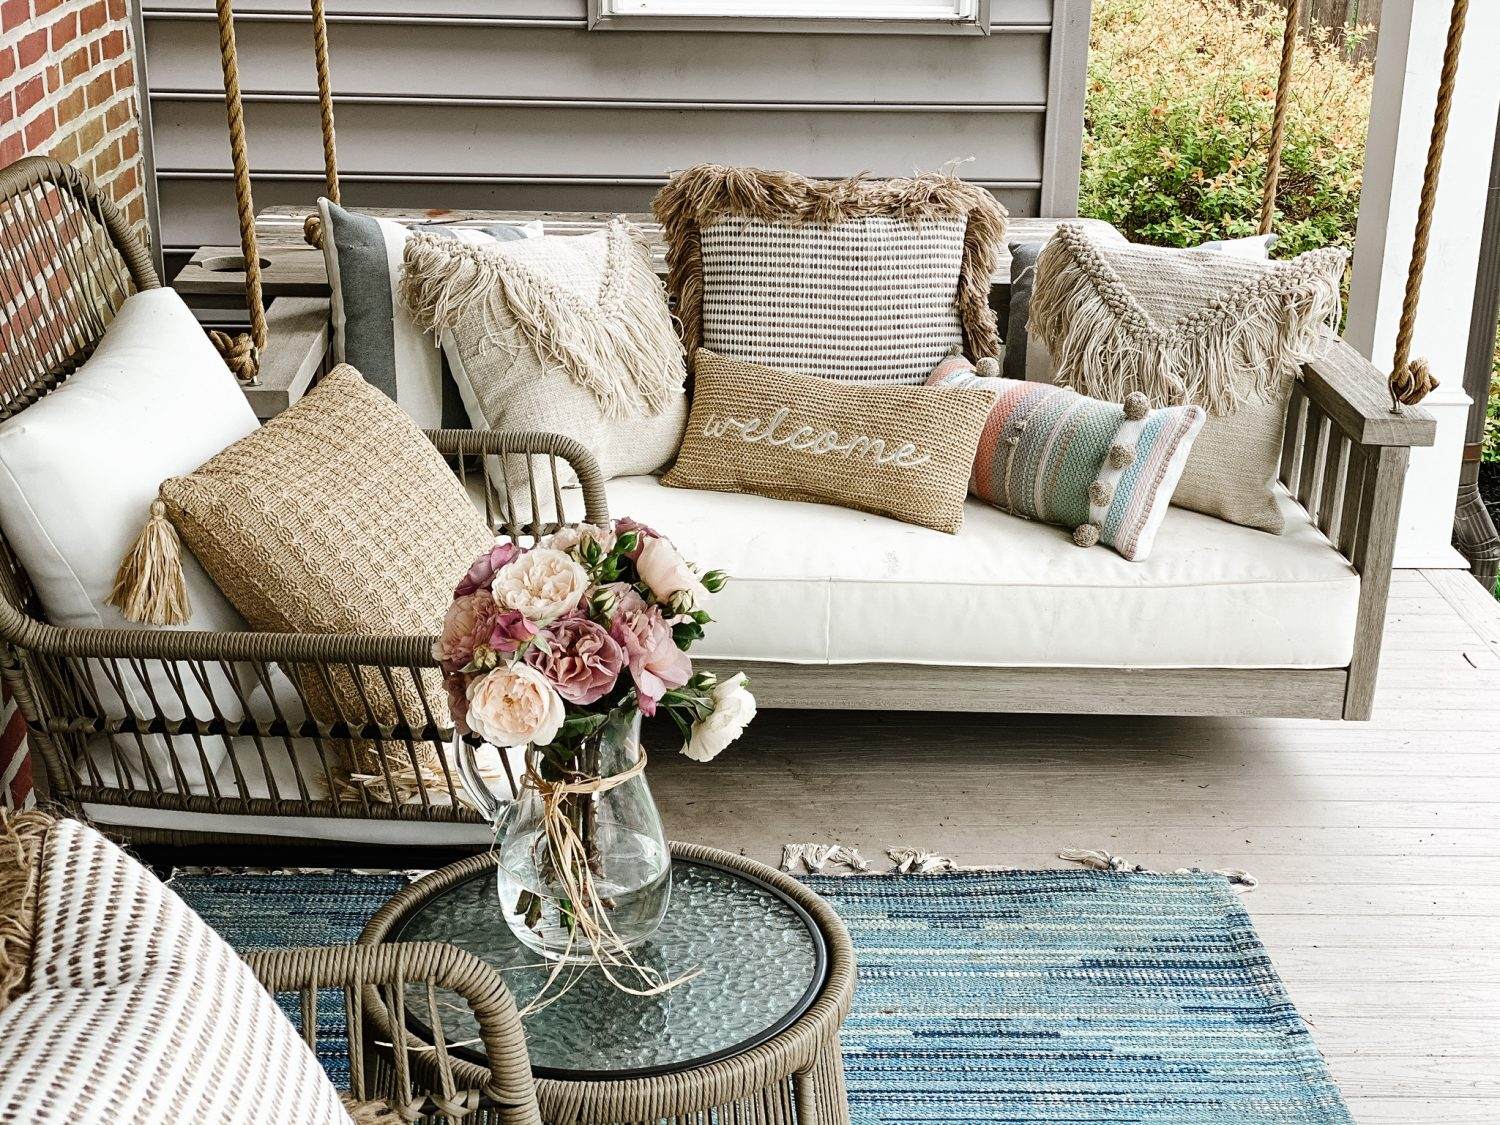 The Motherchic porch swing